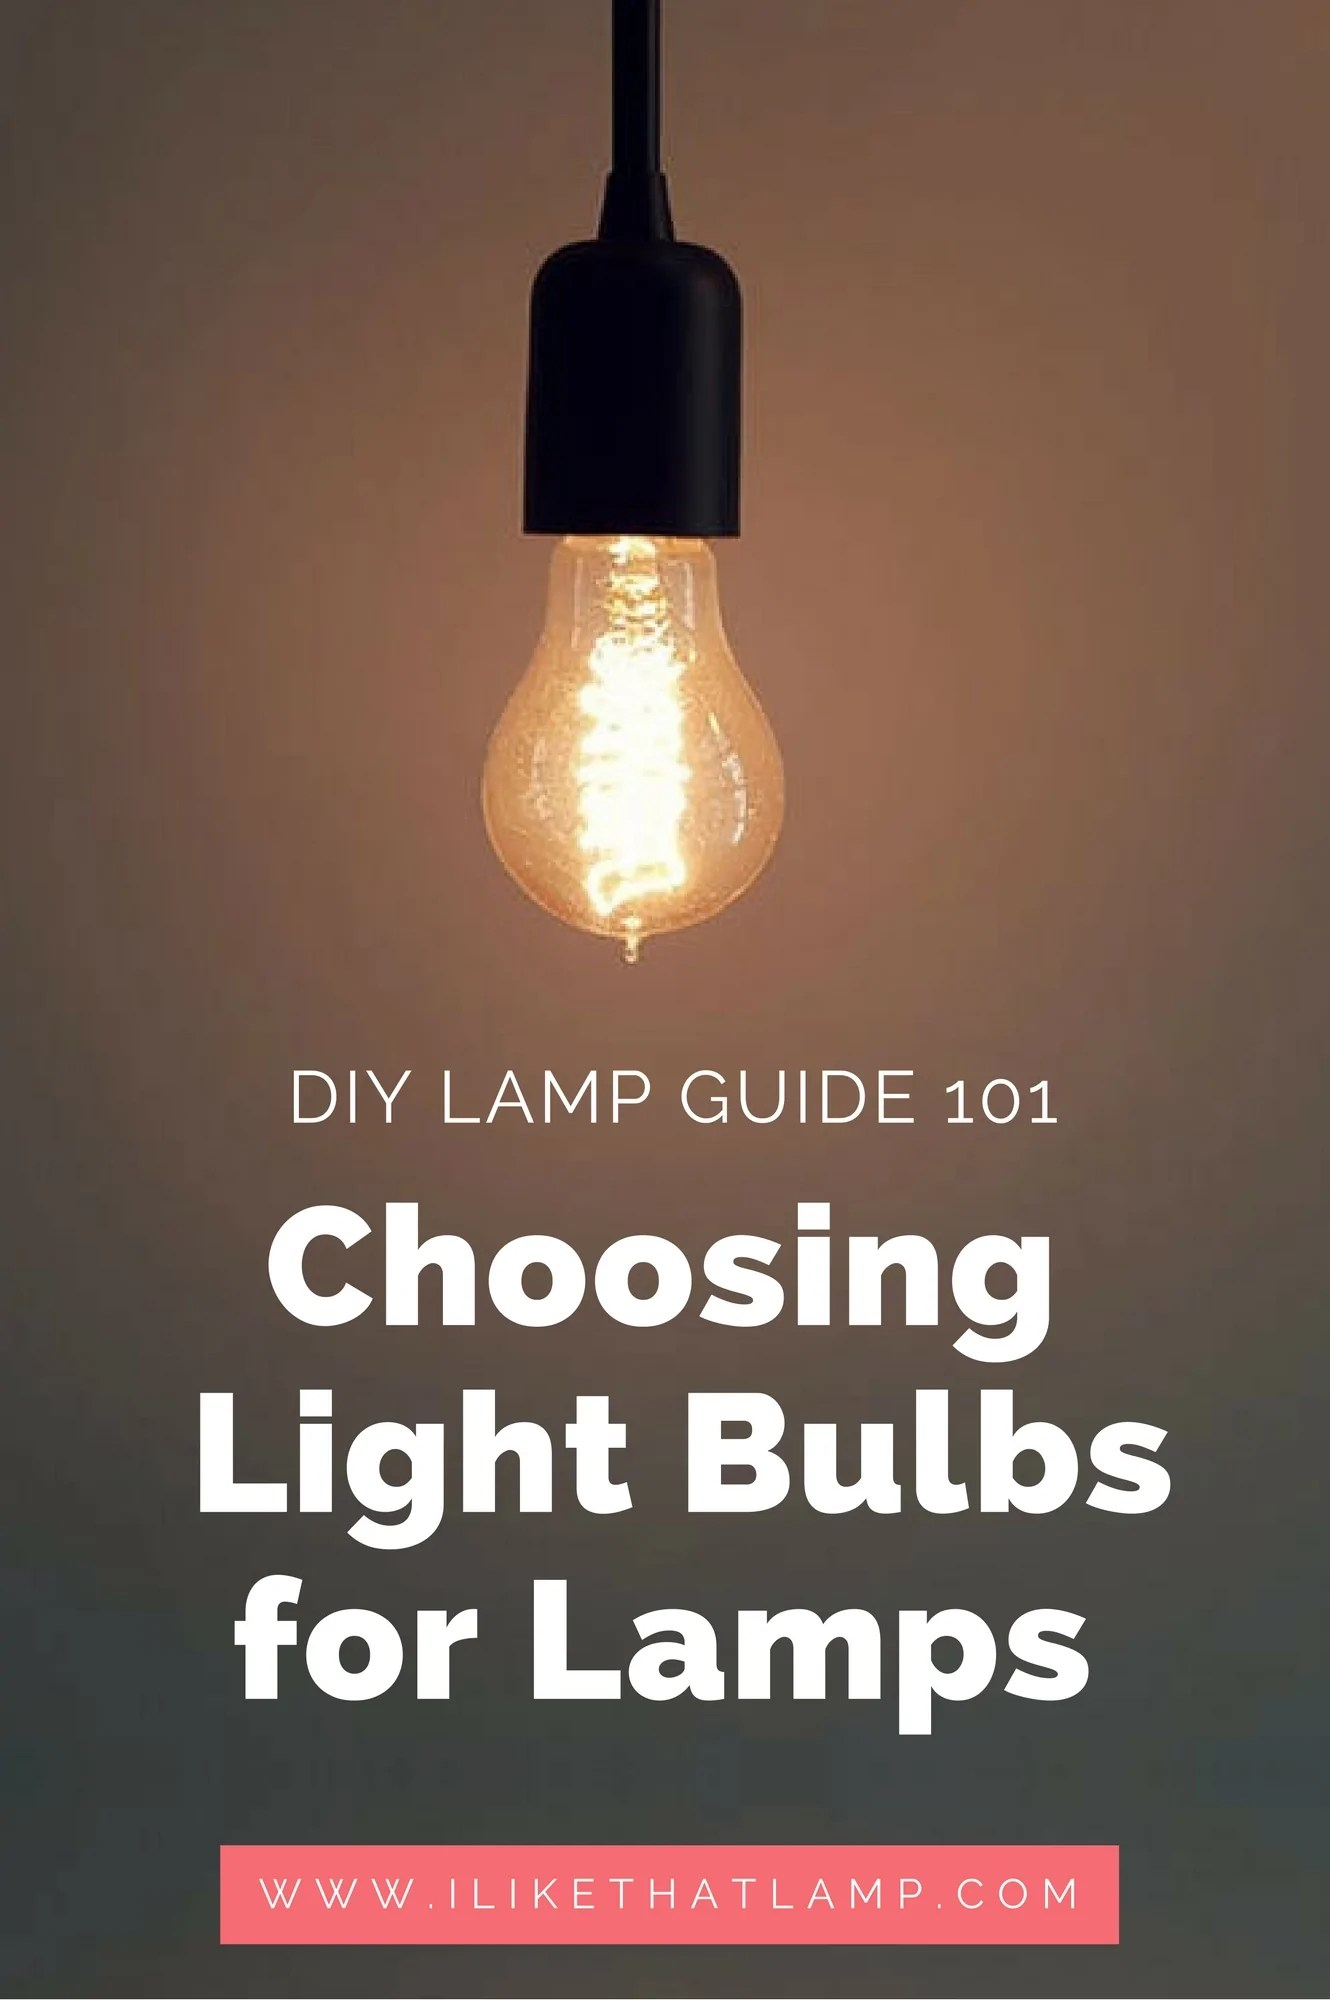 Difference Between Soft White And Daylight Bulbs : difference, between, white, daylight, bulbs, Guide, Choosing, Right, Light, Makely